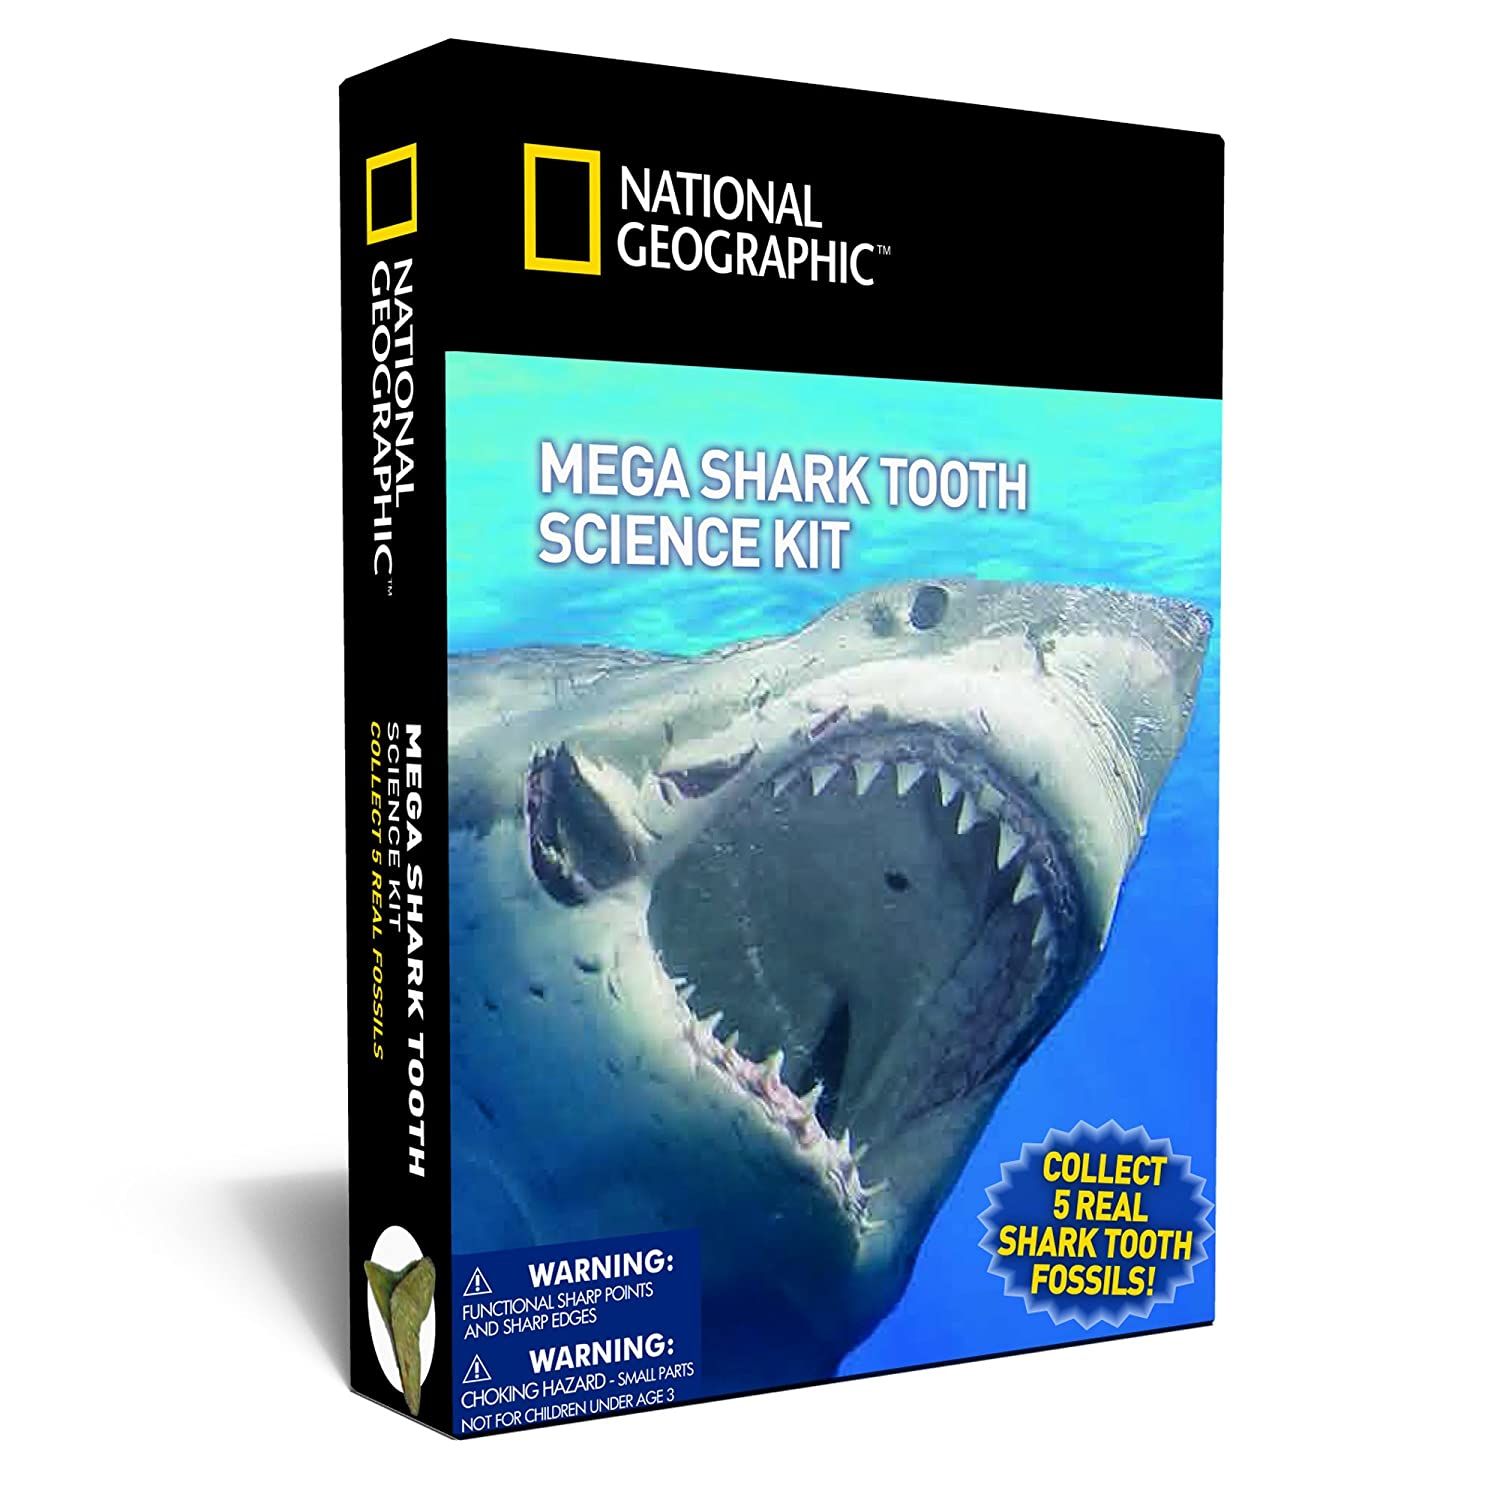 NATIONAL GEOGRAPHIC Mega Shark Tooth Science – Collect 5 Real Shark Teeth